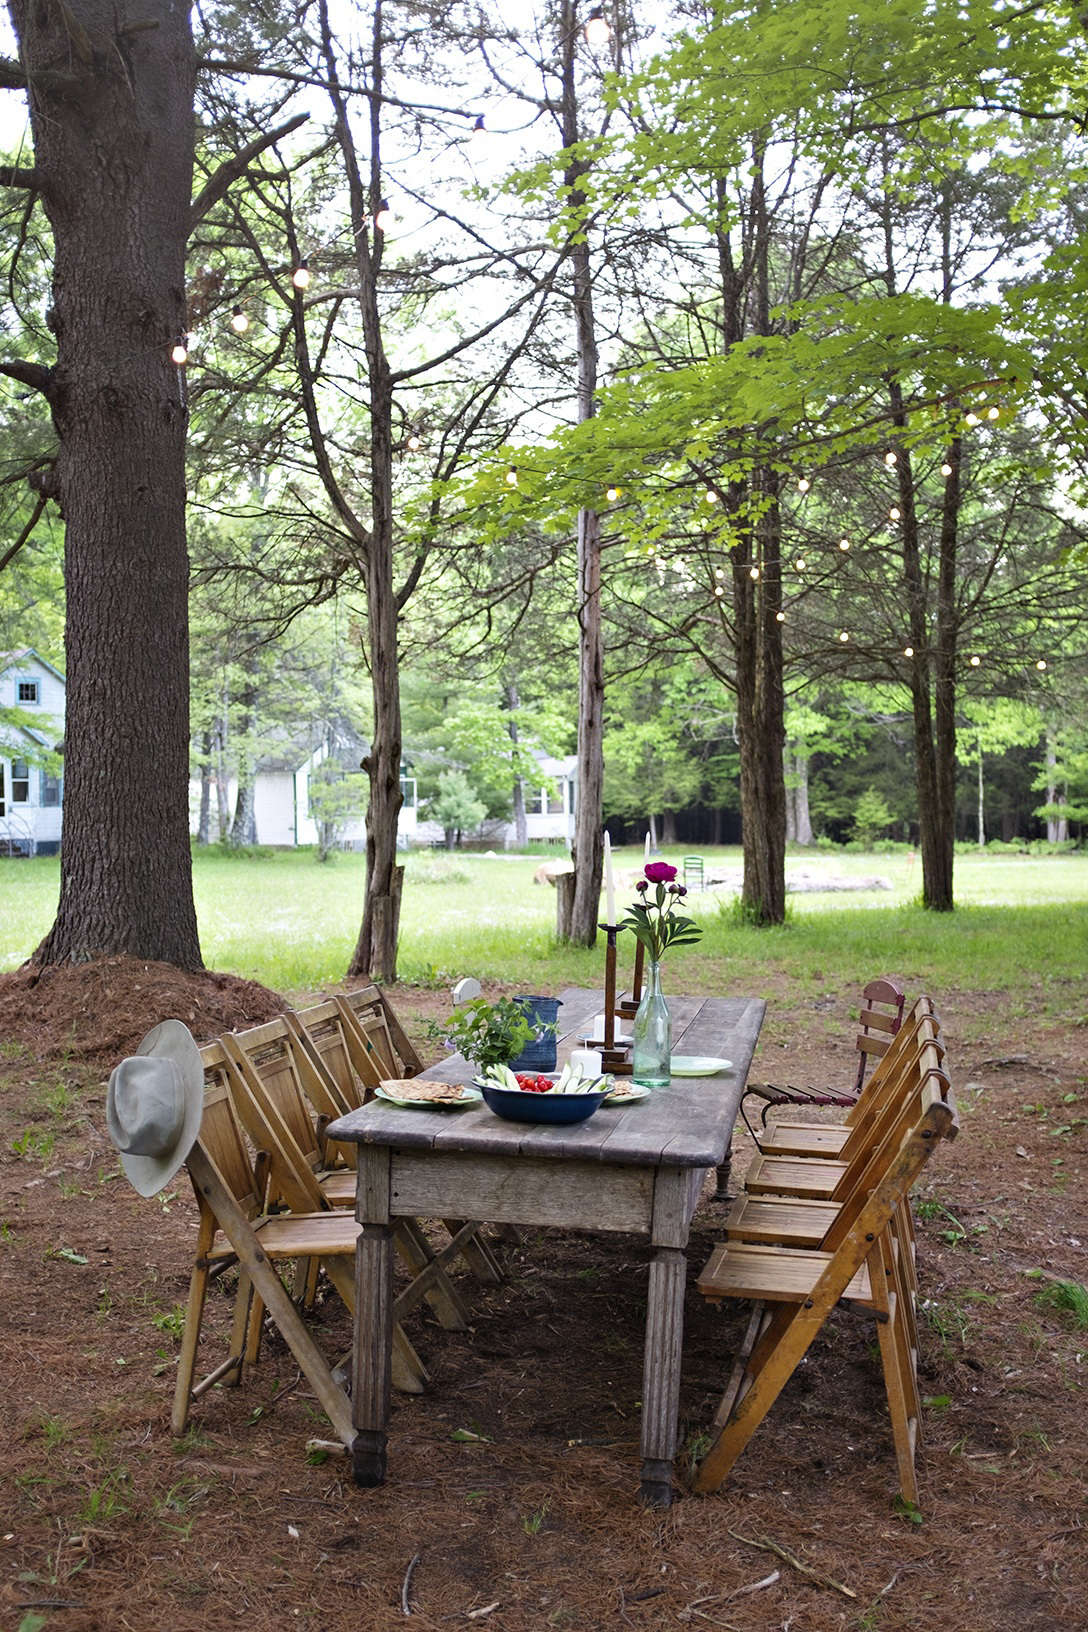 Who wants to have to eat while standing up and balancing a full plate of food? Do your guests a favor and provide seating and a surface on which to rest their plates. This wholly charming dining setup, thanks to indoor furniture brought outdoors, is courtesy of the Glen Wilde. This week, its proprietors shared How to Open Up the Summerhouse for the Season.